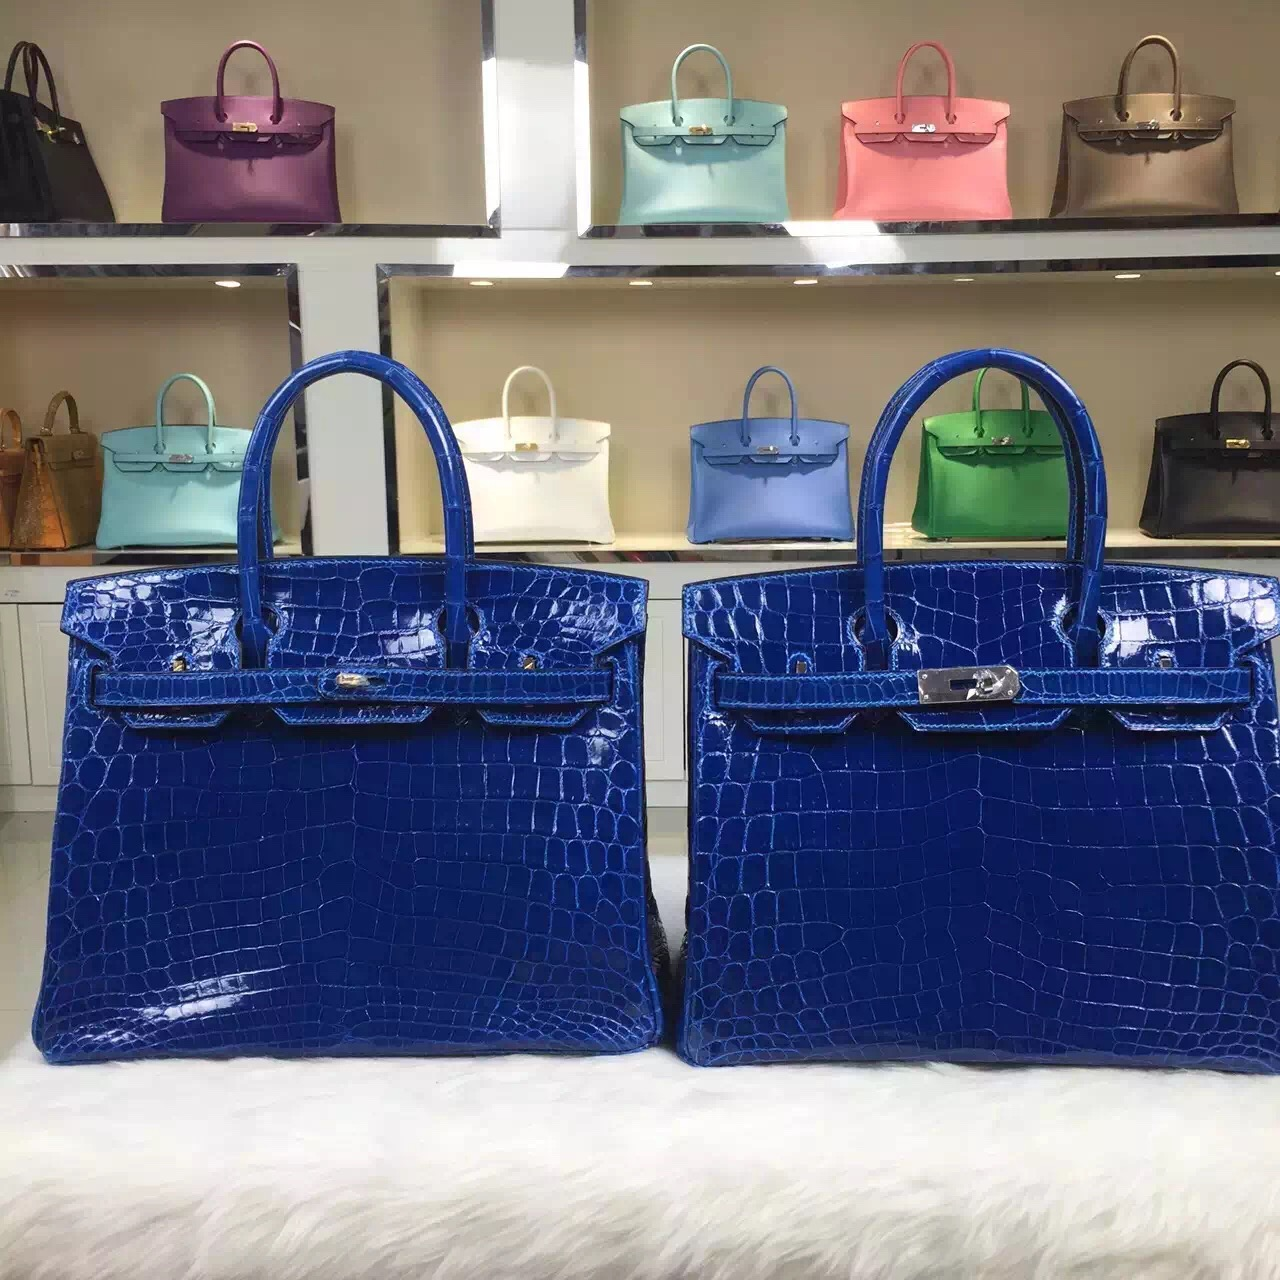 Hand Stitching Hermes HCP Nicotious Crocodile Leather Birkin30 in 7Q Mykonos